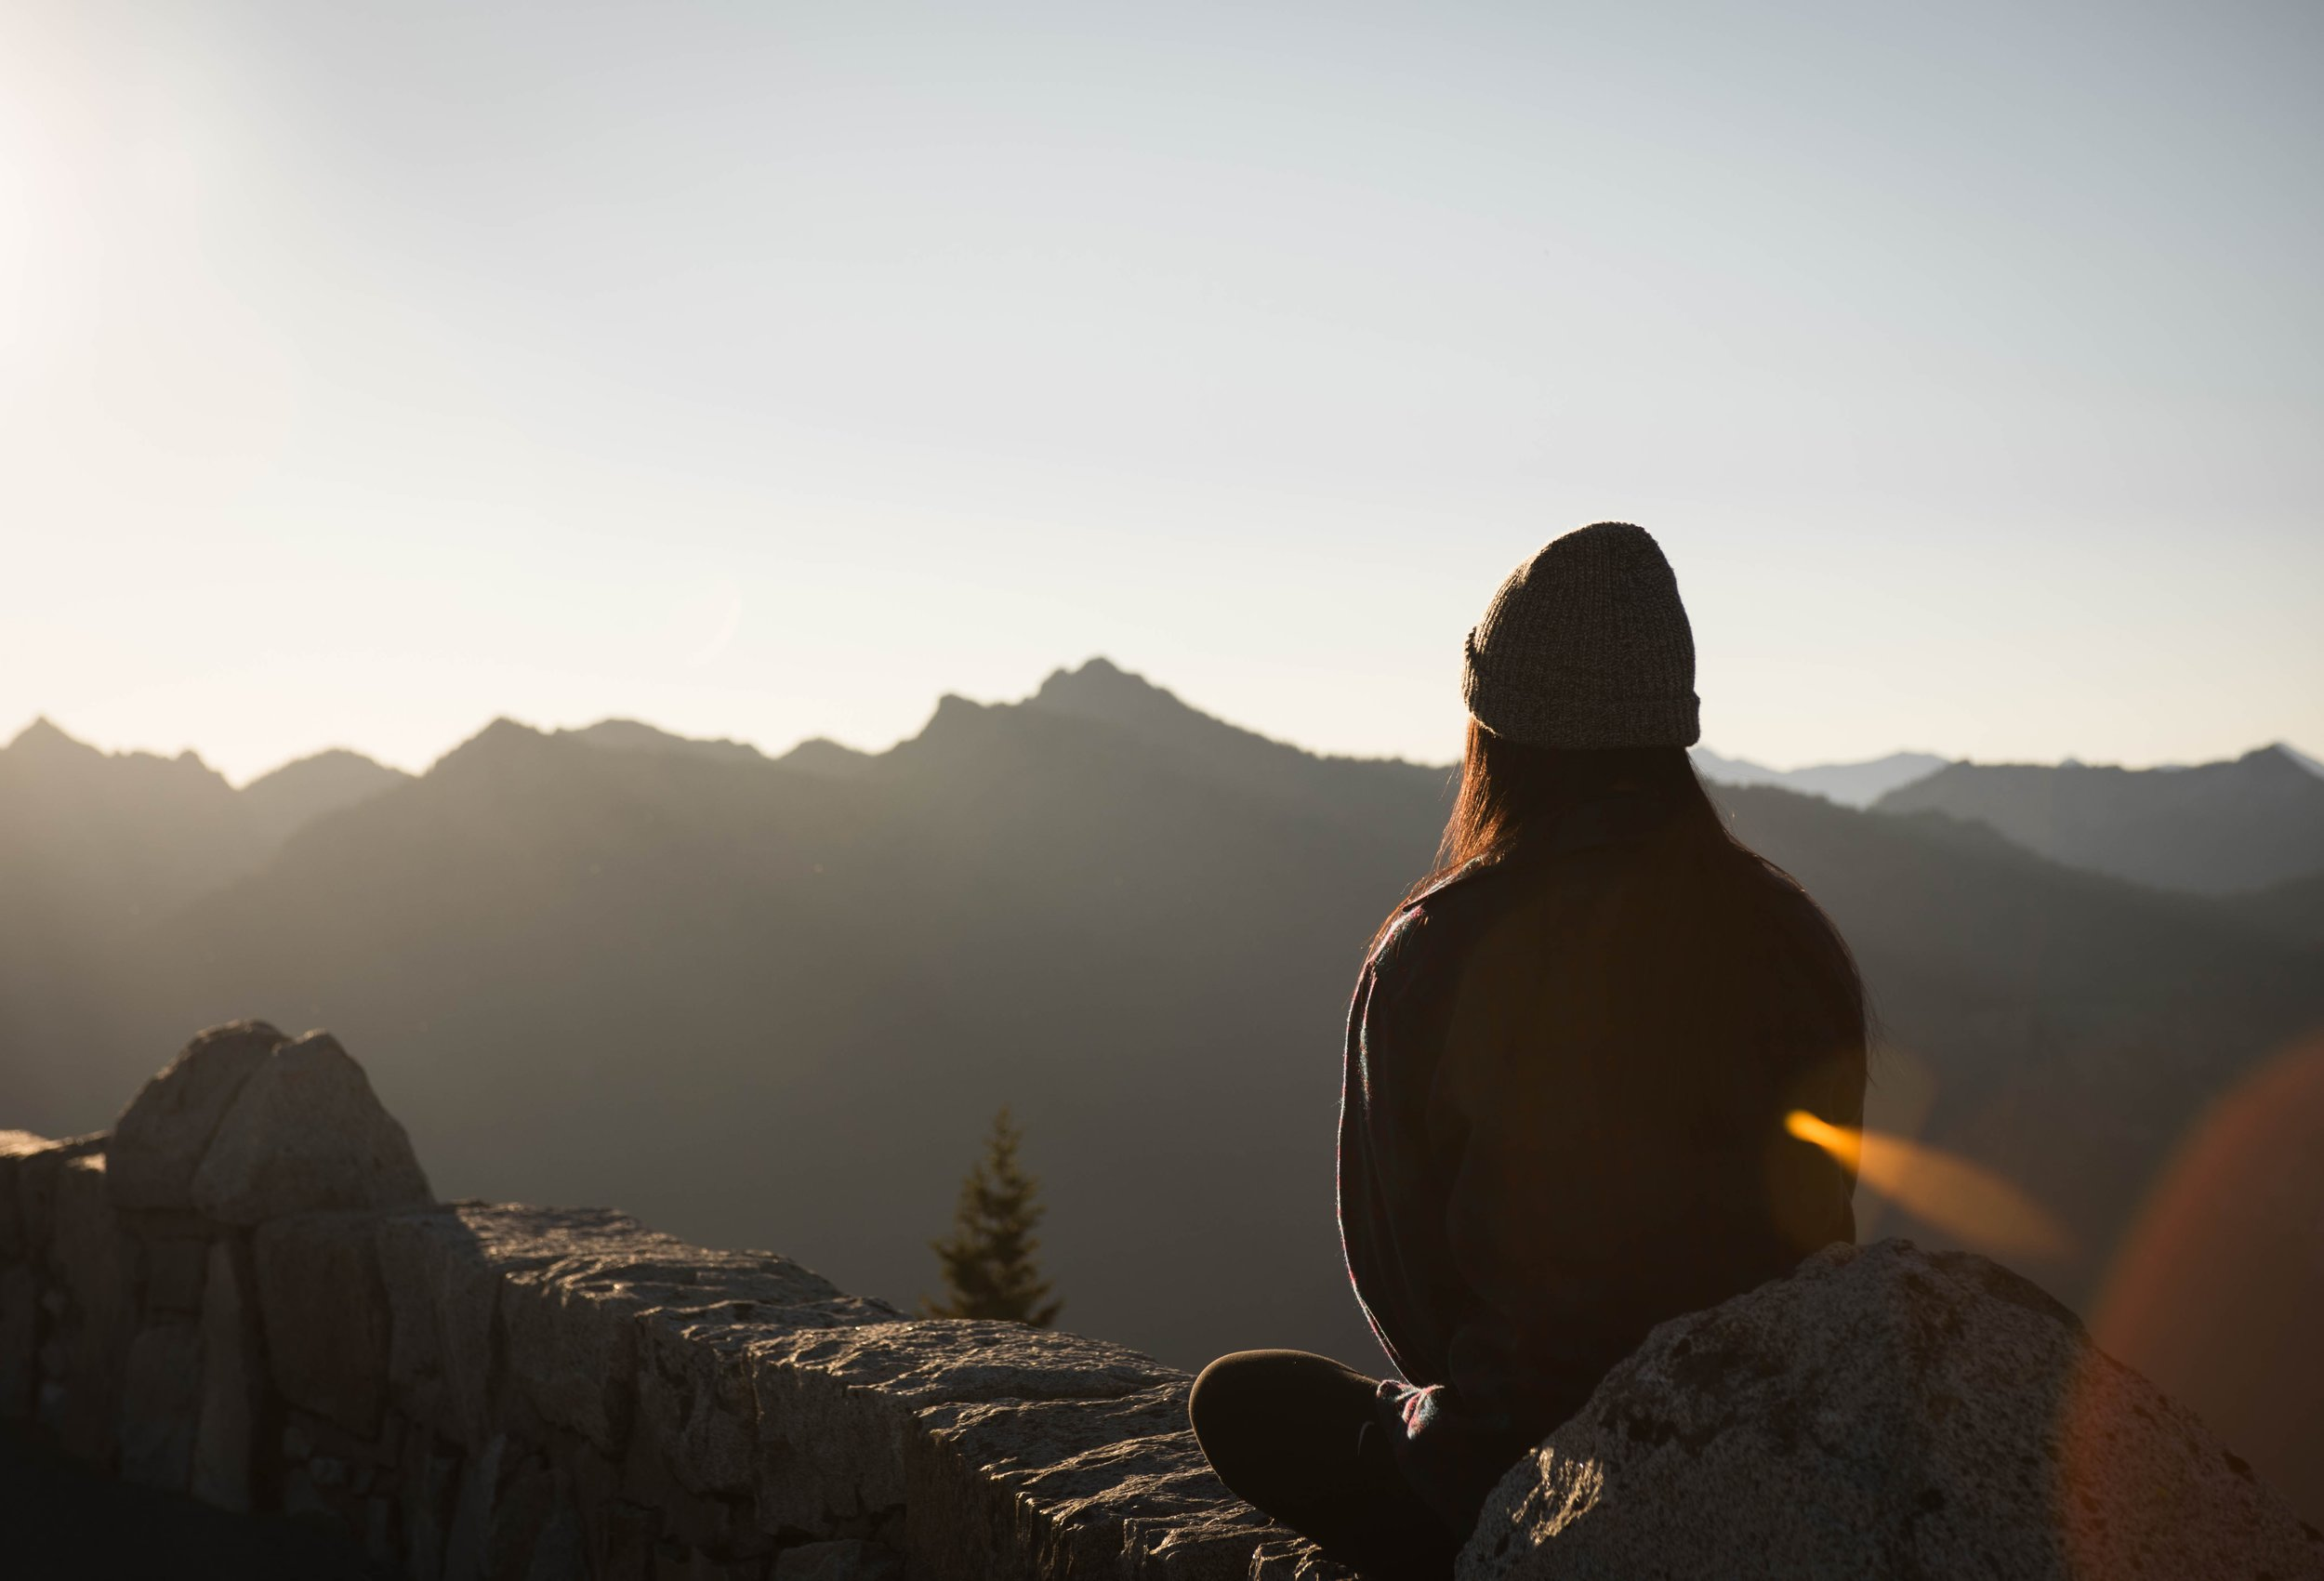 Girl looking out over mountains